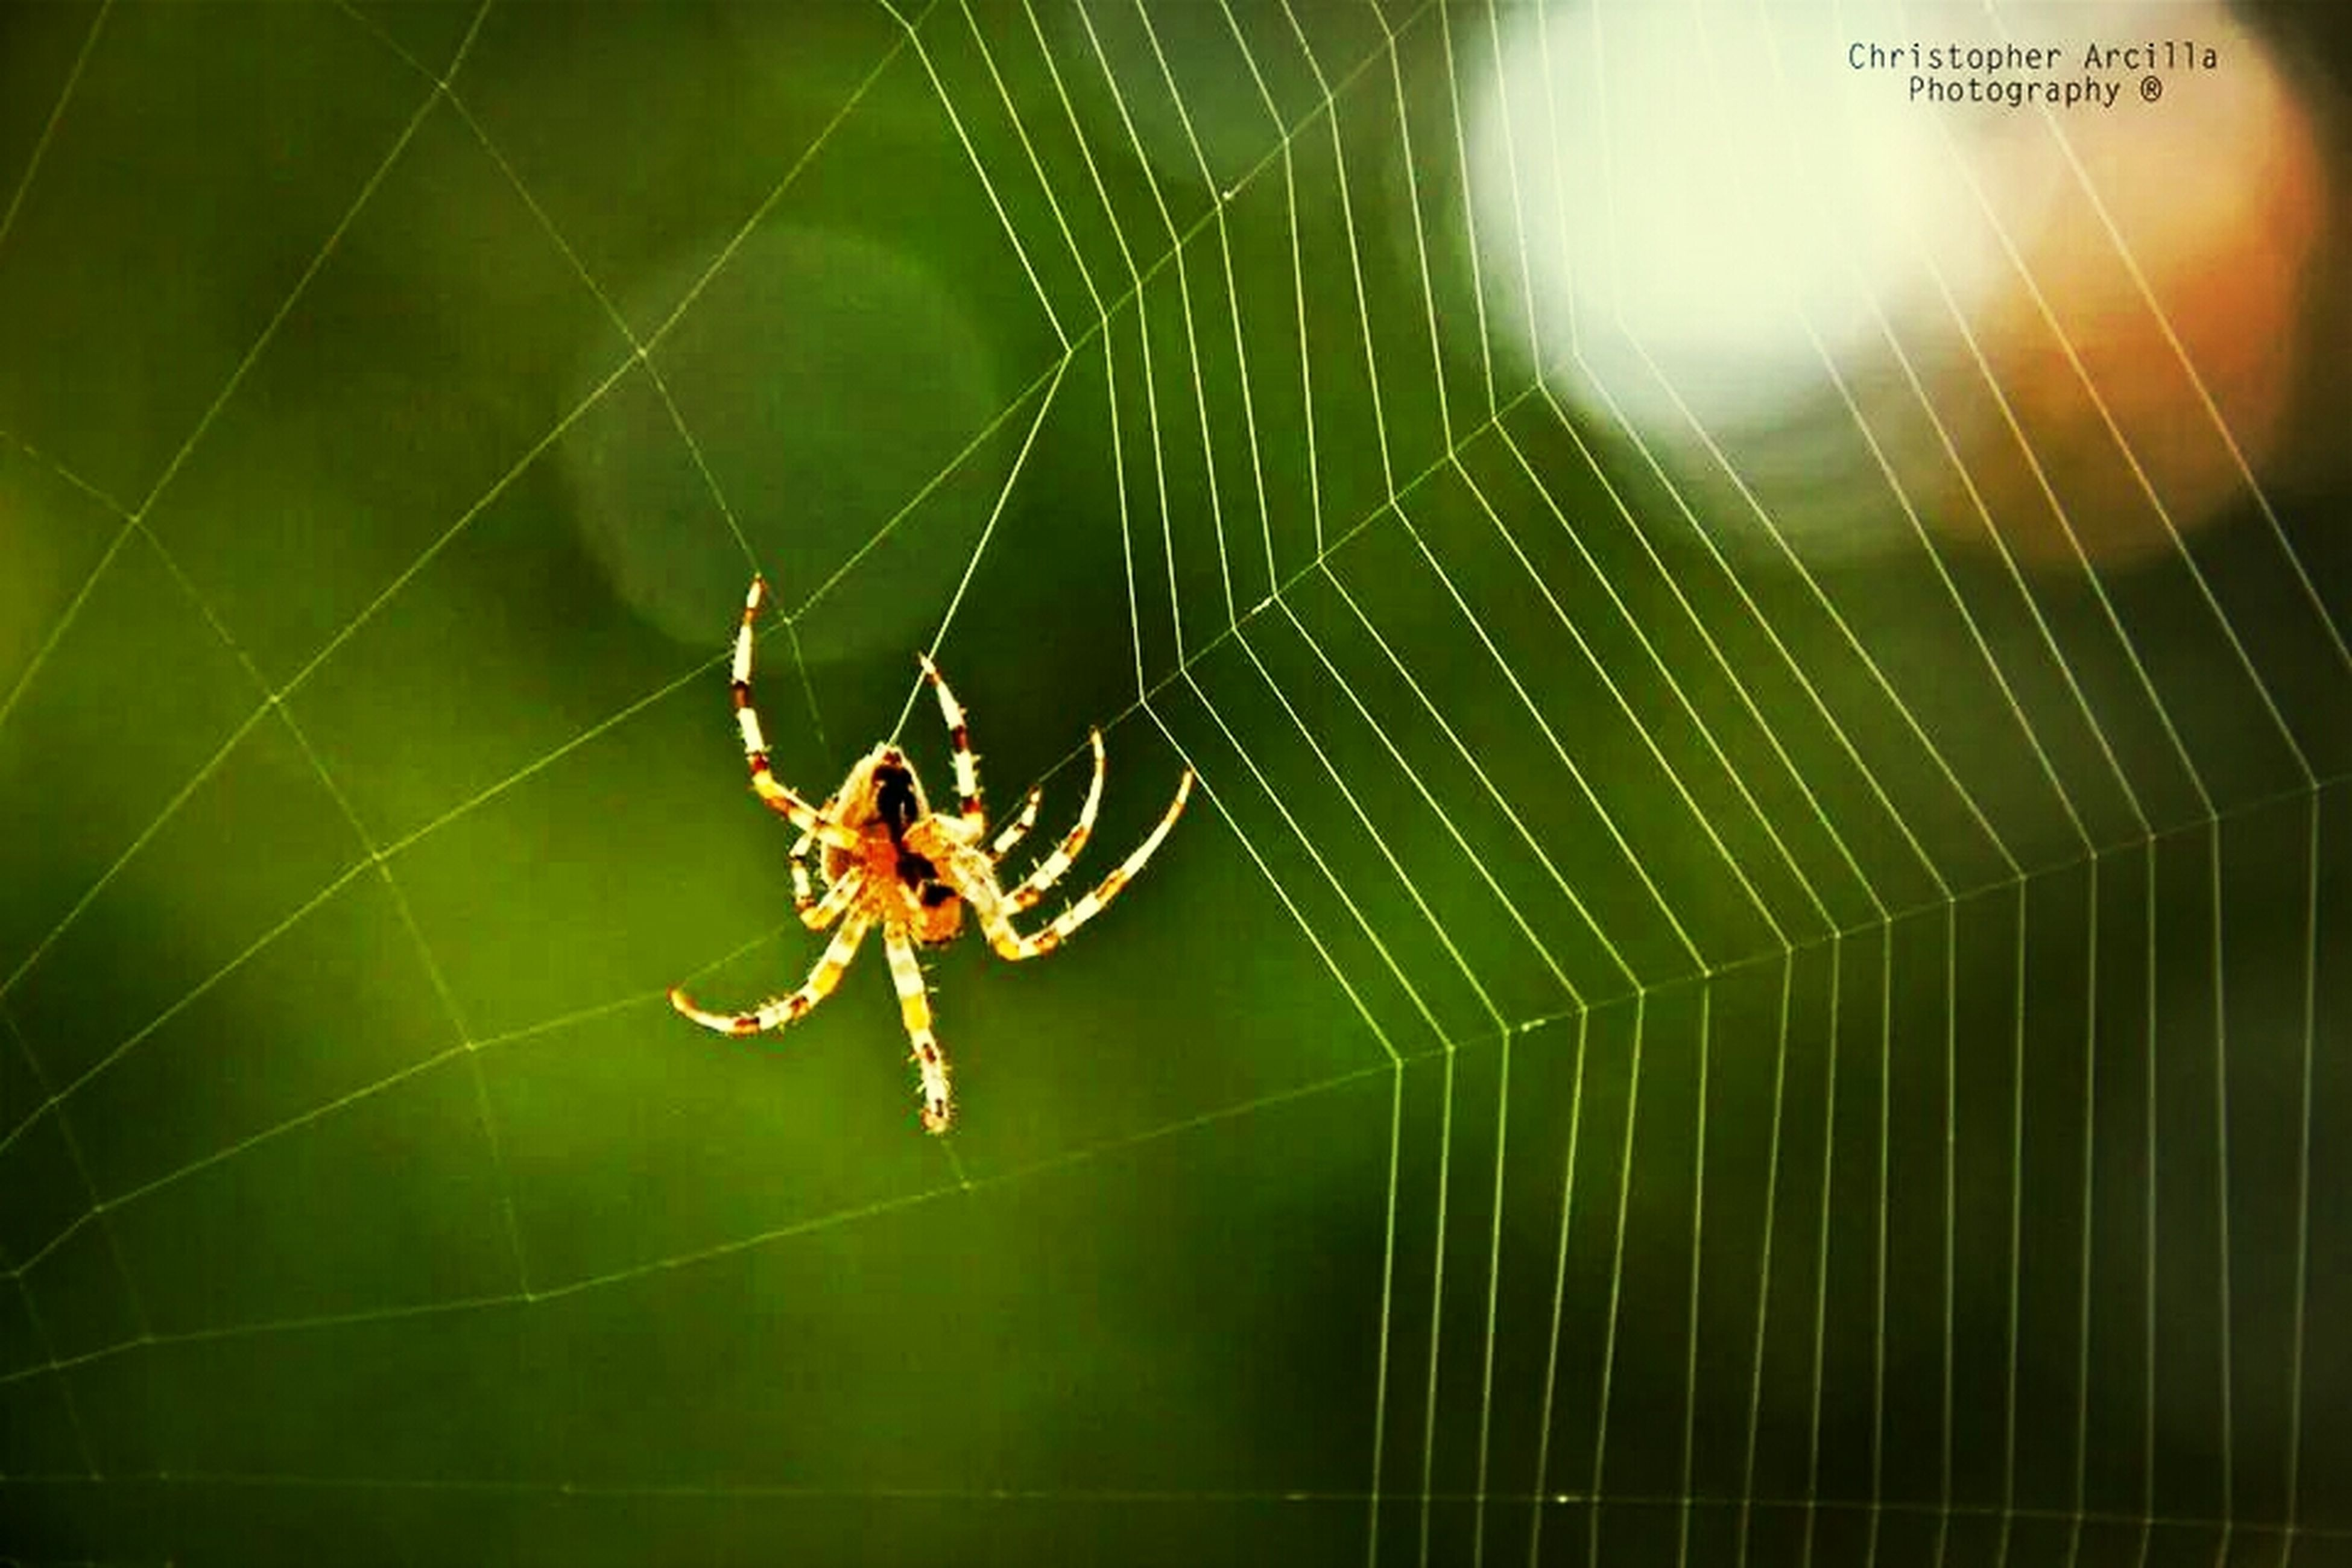 animal themes, one animal, insect, animals in the wild, wildlife, spider, spider web, close-up, focus on foreground, selective focus, nature, zoology, full length, day, green color, outdoors, no people, arachnid, web